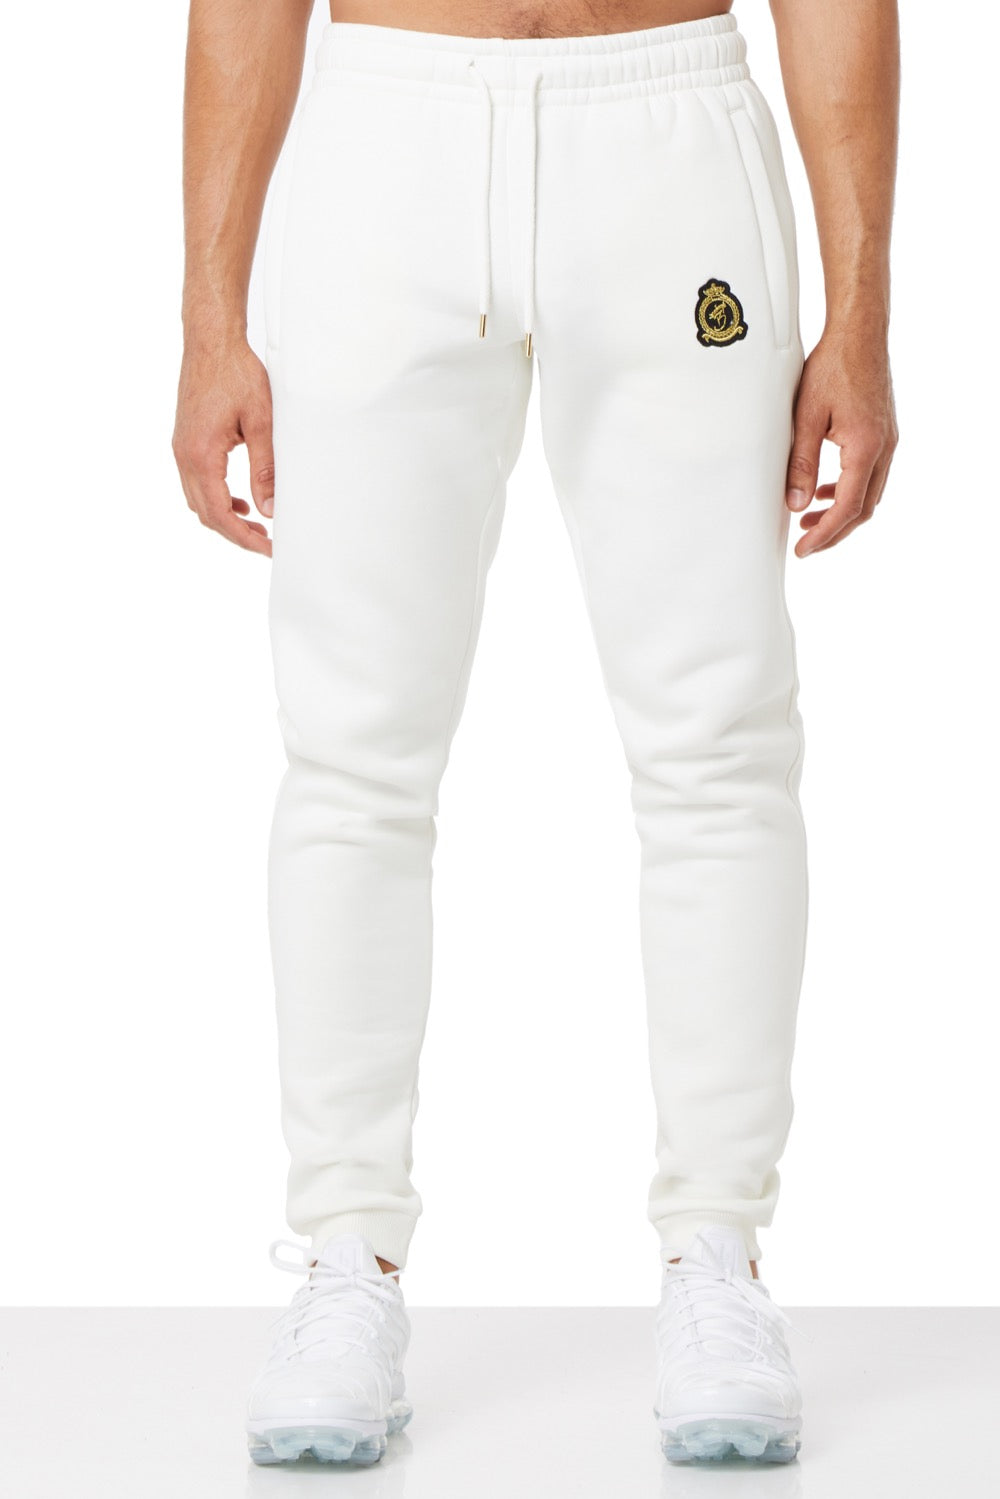 Benjart Gold Label Quarter Zip Joggers Off white